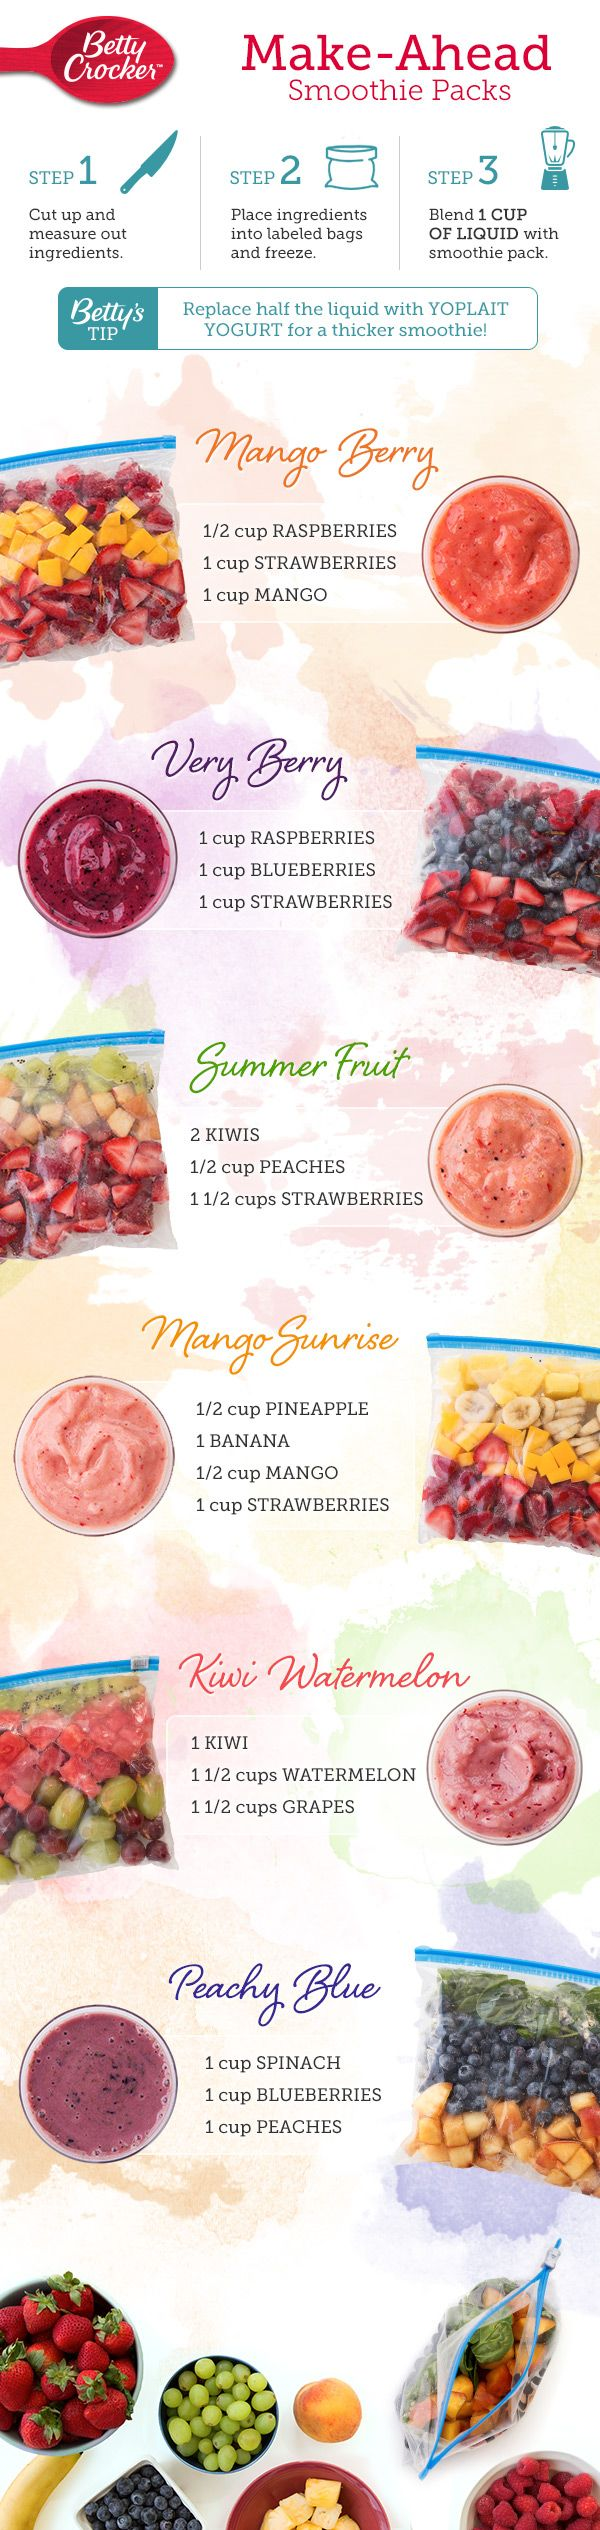 are fruit smoothies healthy dried fruit healthy or not